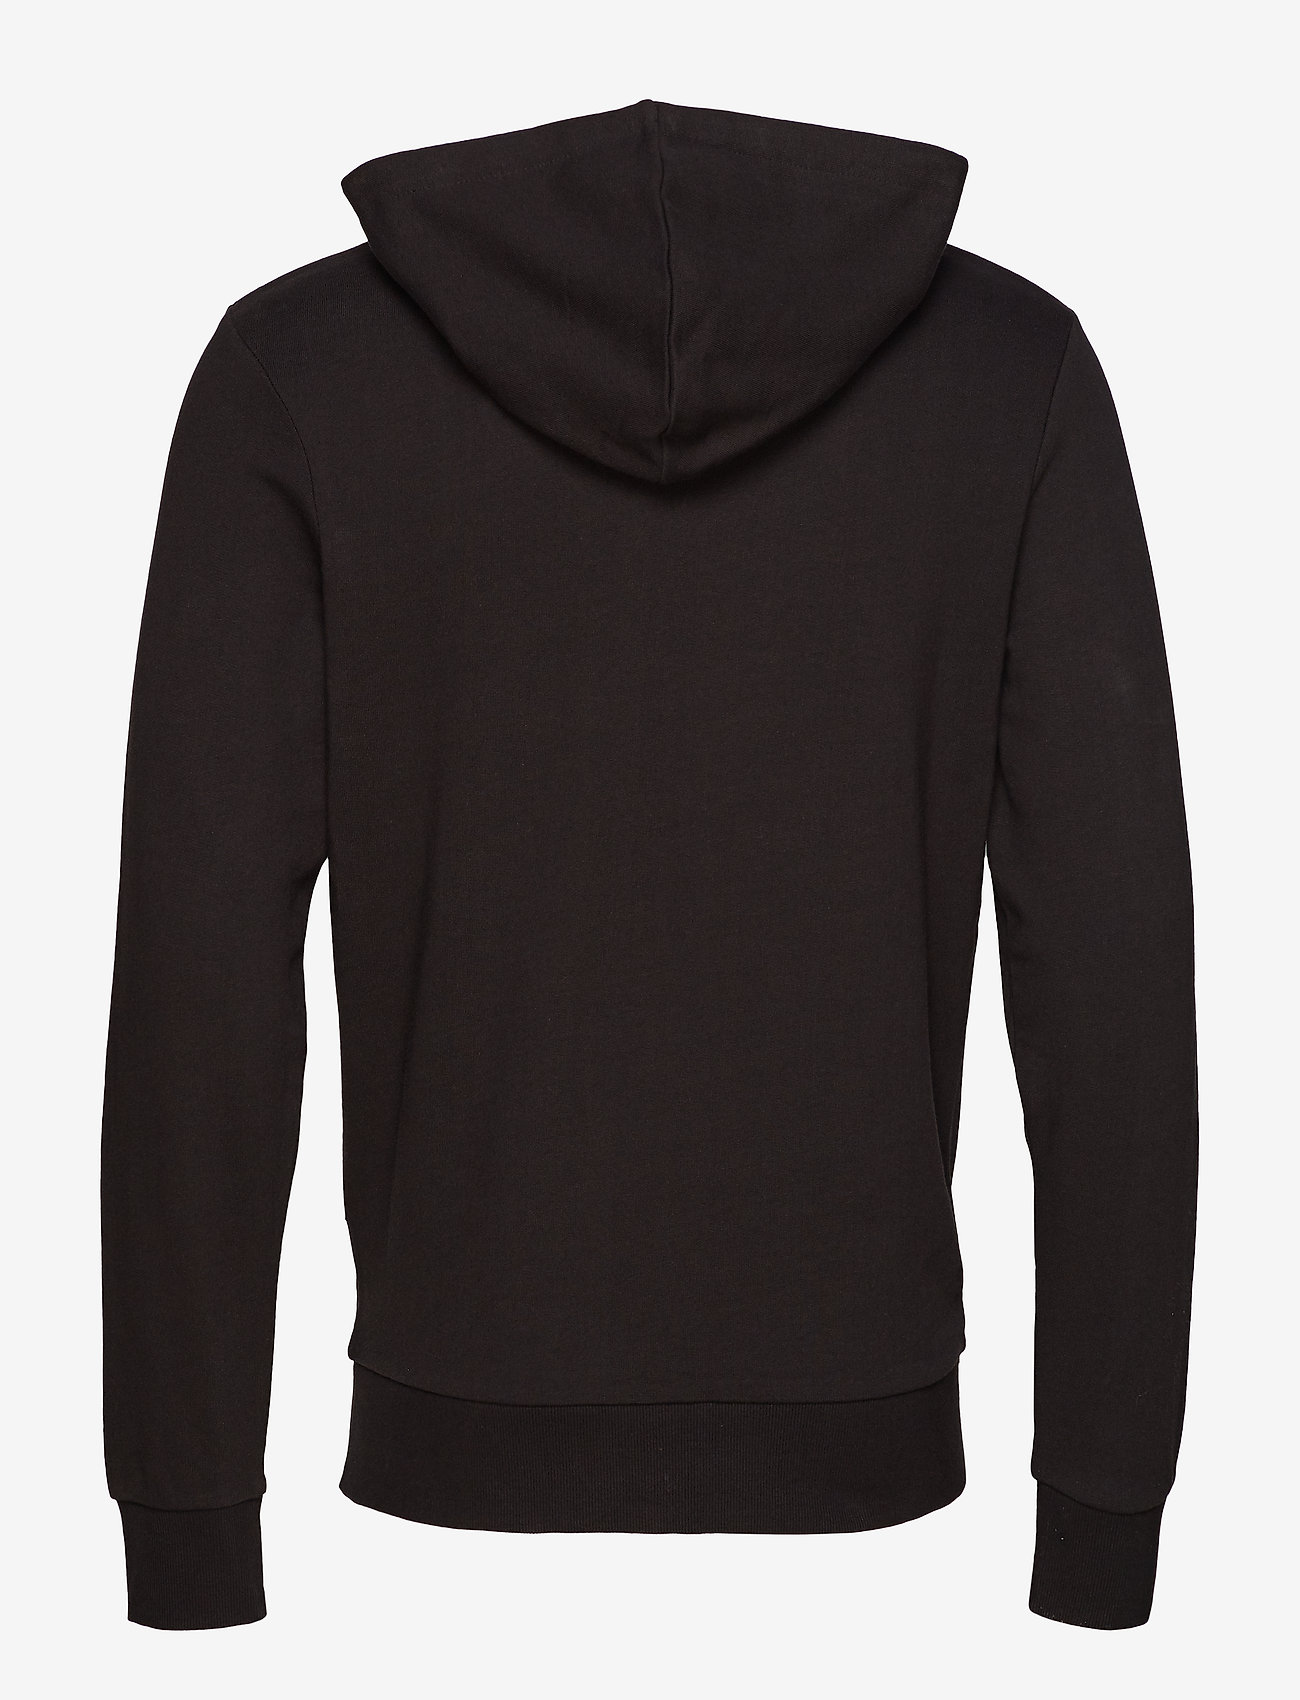 Jack & Jones JJEHOLMEN SWEAT ZIP HOOD NOOS - Sweatshirts BLACK - Menn Klær